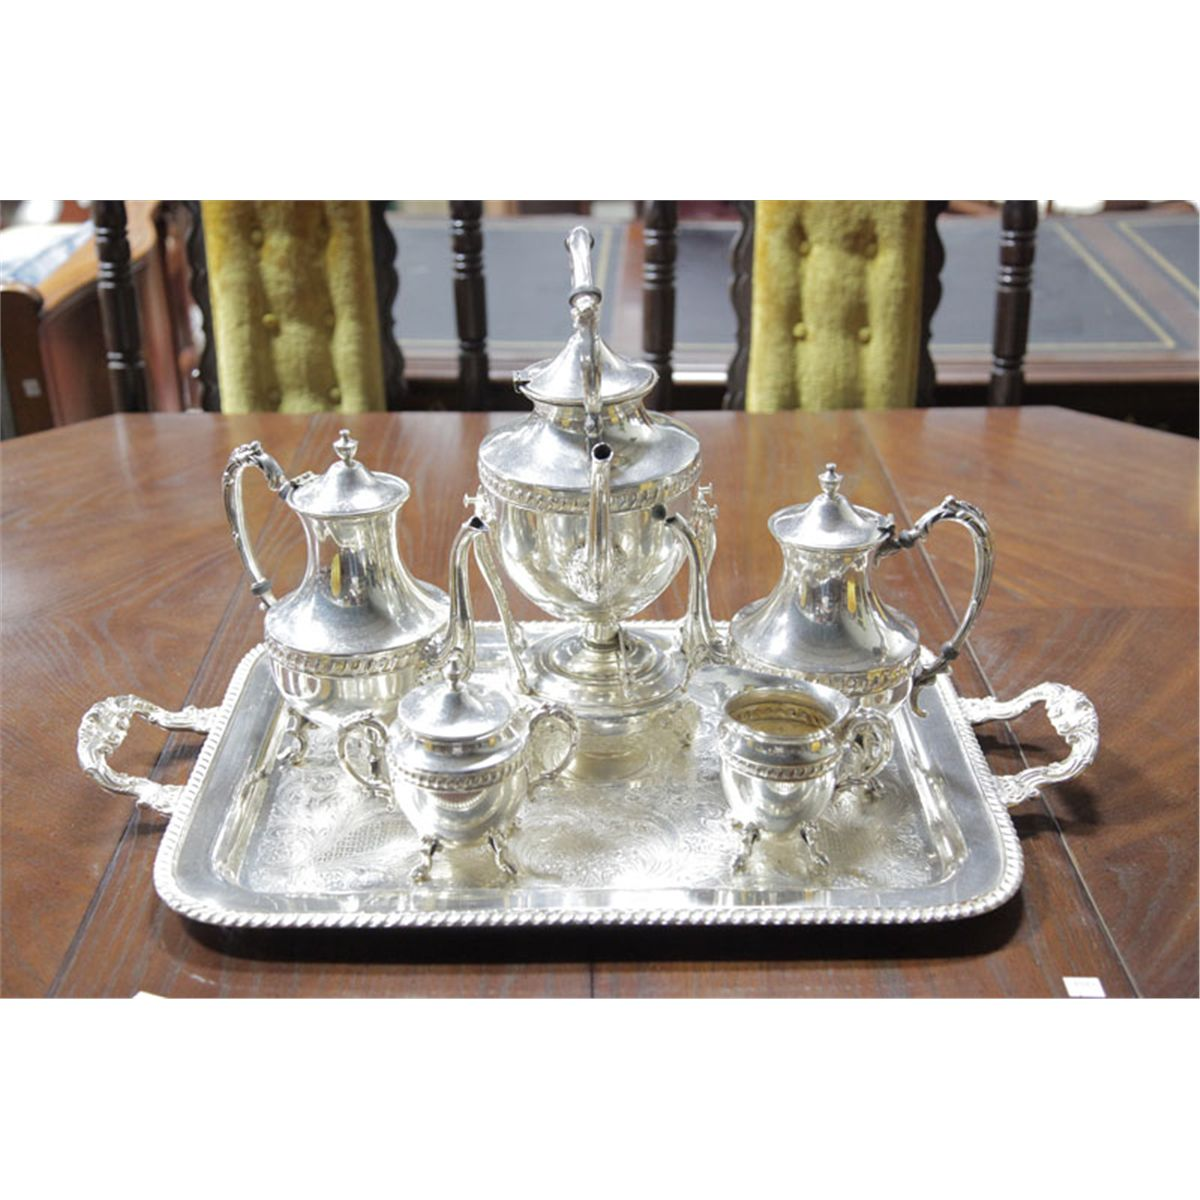 SIX PIECE SILVER PLATED TEA SET. Silver on copper and including water pot with burner. 14 1/4 h. Co  sc 1 st  iCollector.com & SIX PIECE SILVER PLATED TEA SET. Silver on copper and including ...